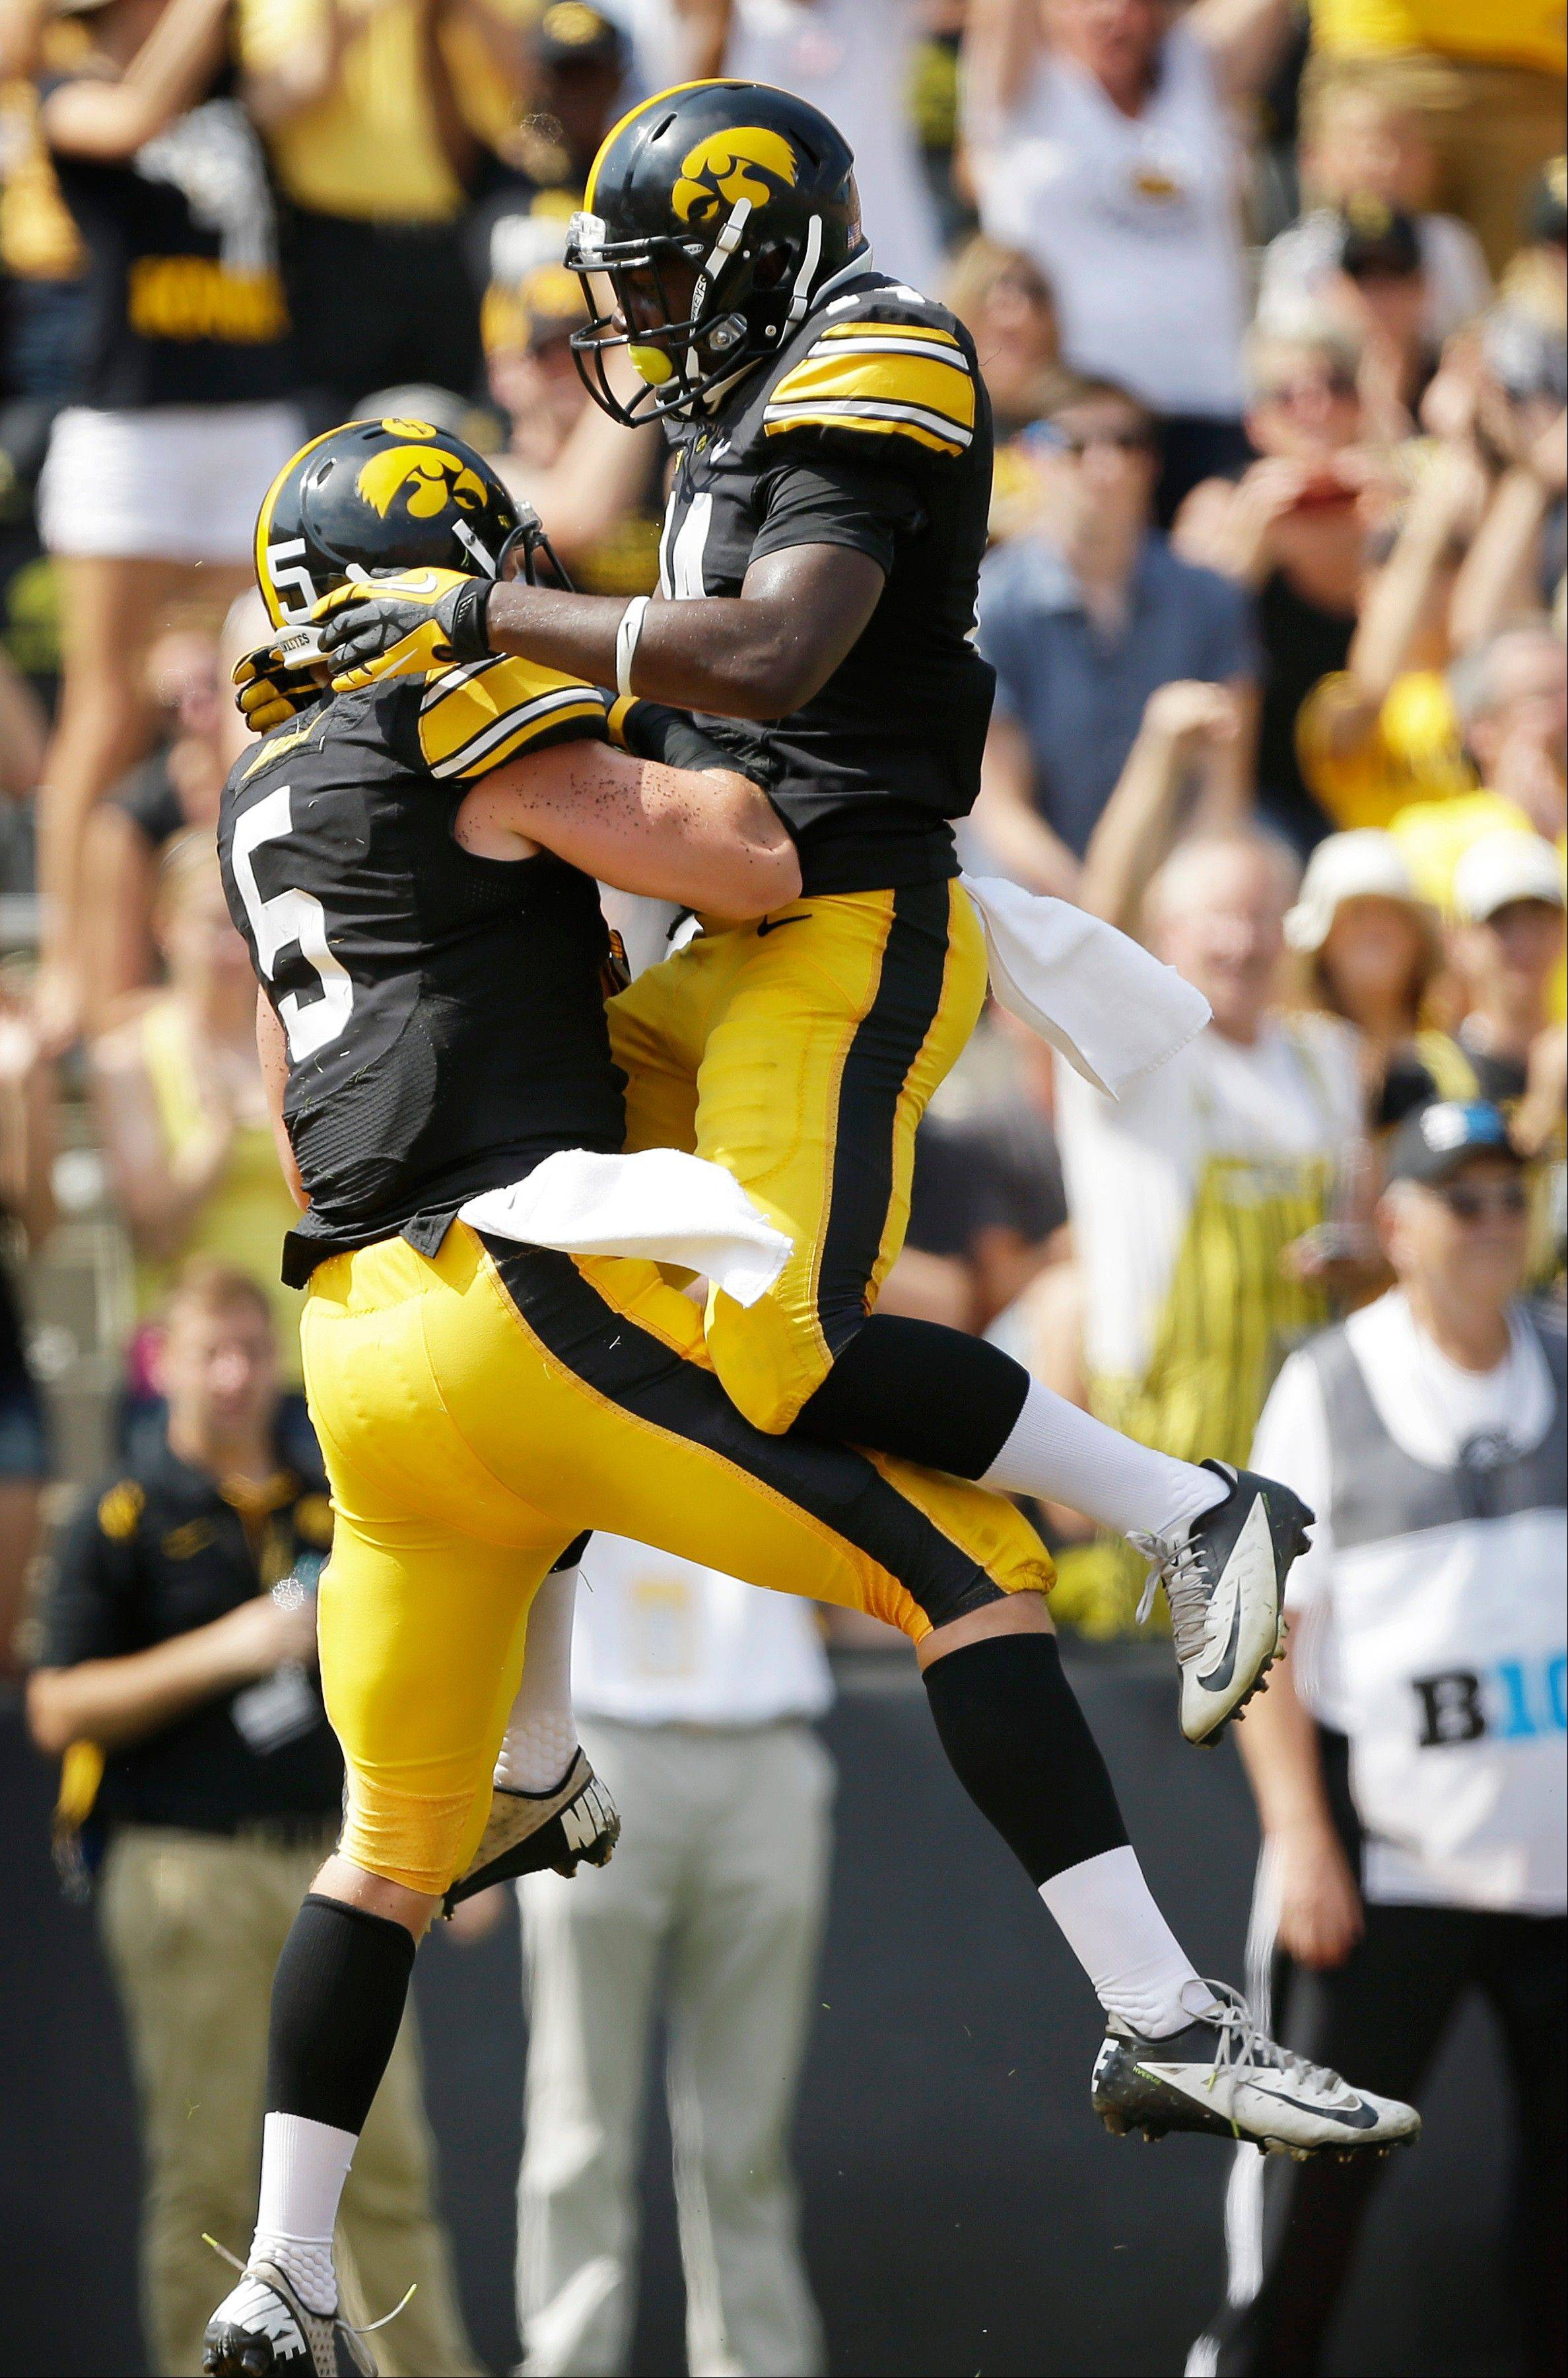 Iowa defensive back Tanner Miller, left, celebrates with teammate Desmond King after intercepting a pass in the end zone during the second half of Saturday�s game against Missouri State in Iowa City, Iowa.